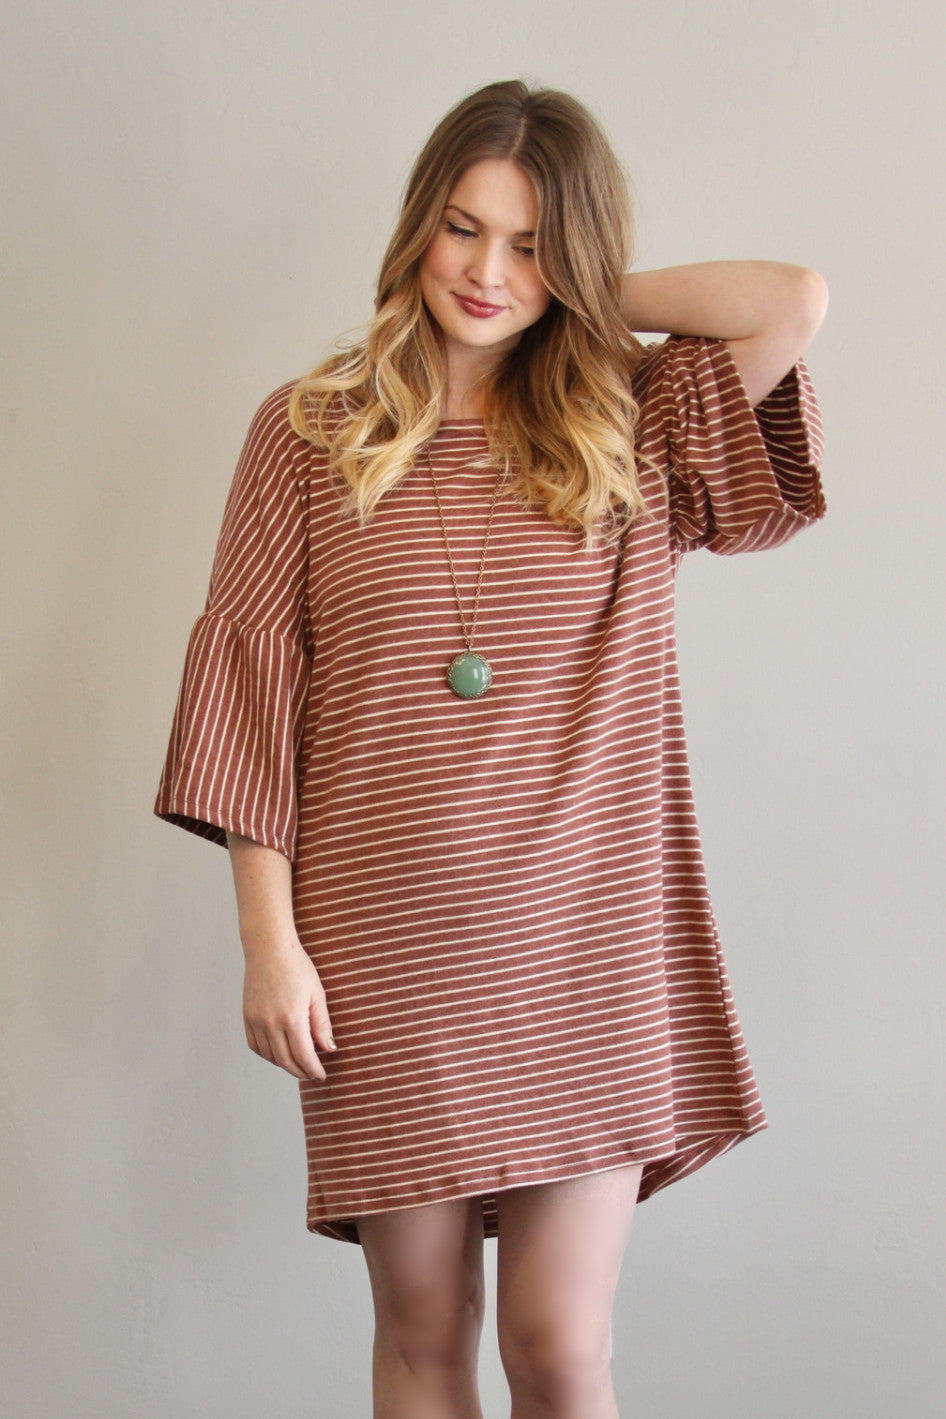 Oversized Stripe Dress in Rust - Final Sale